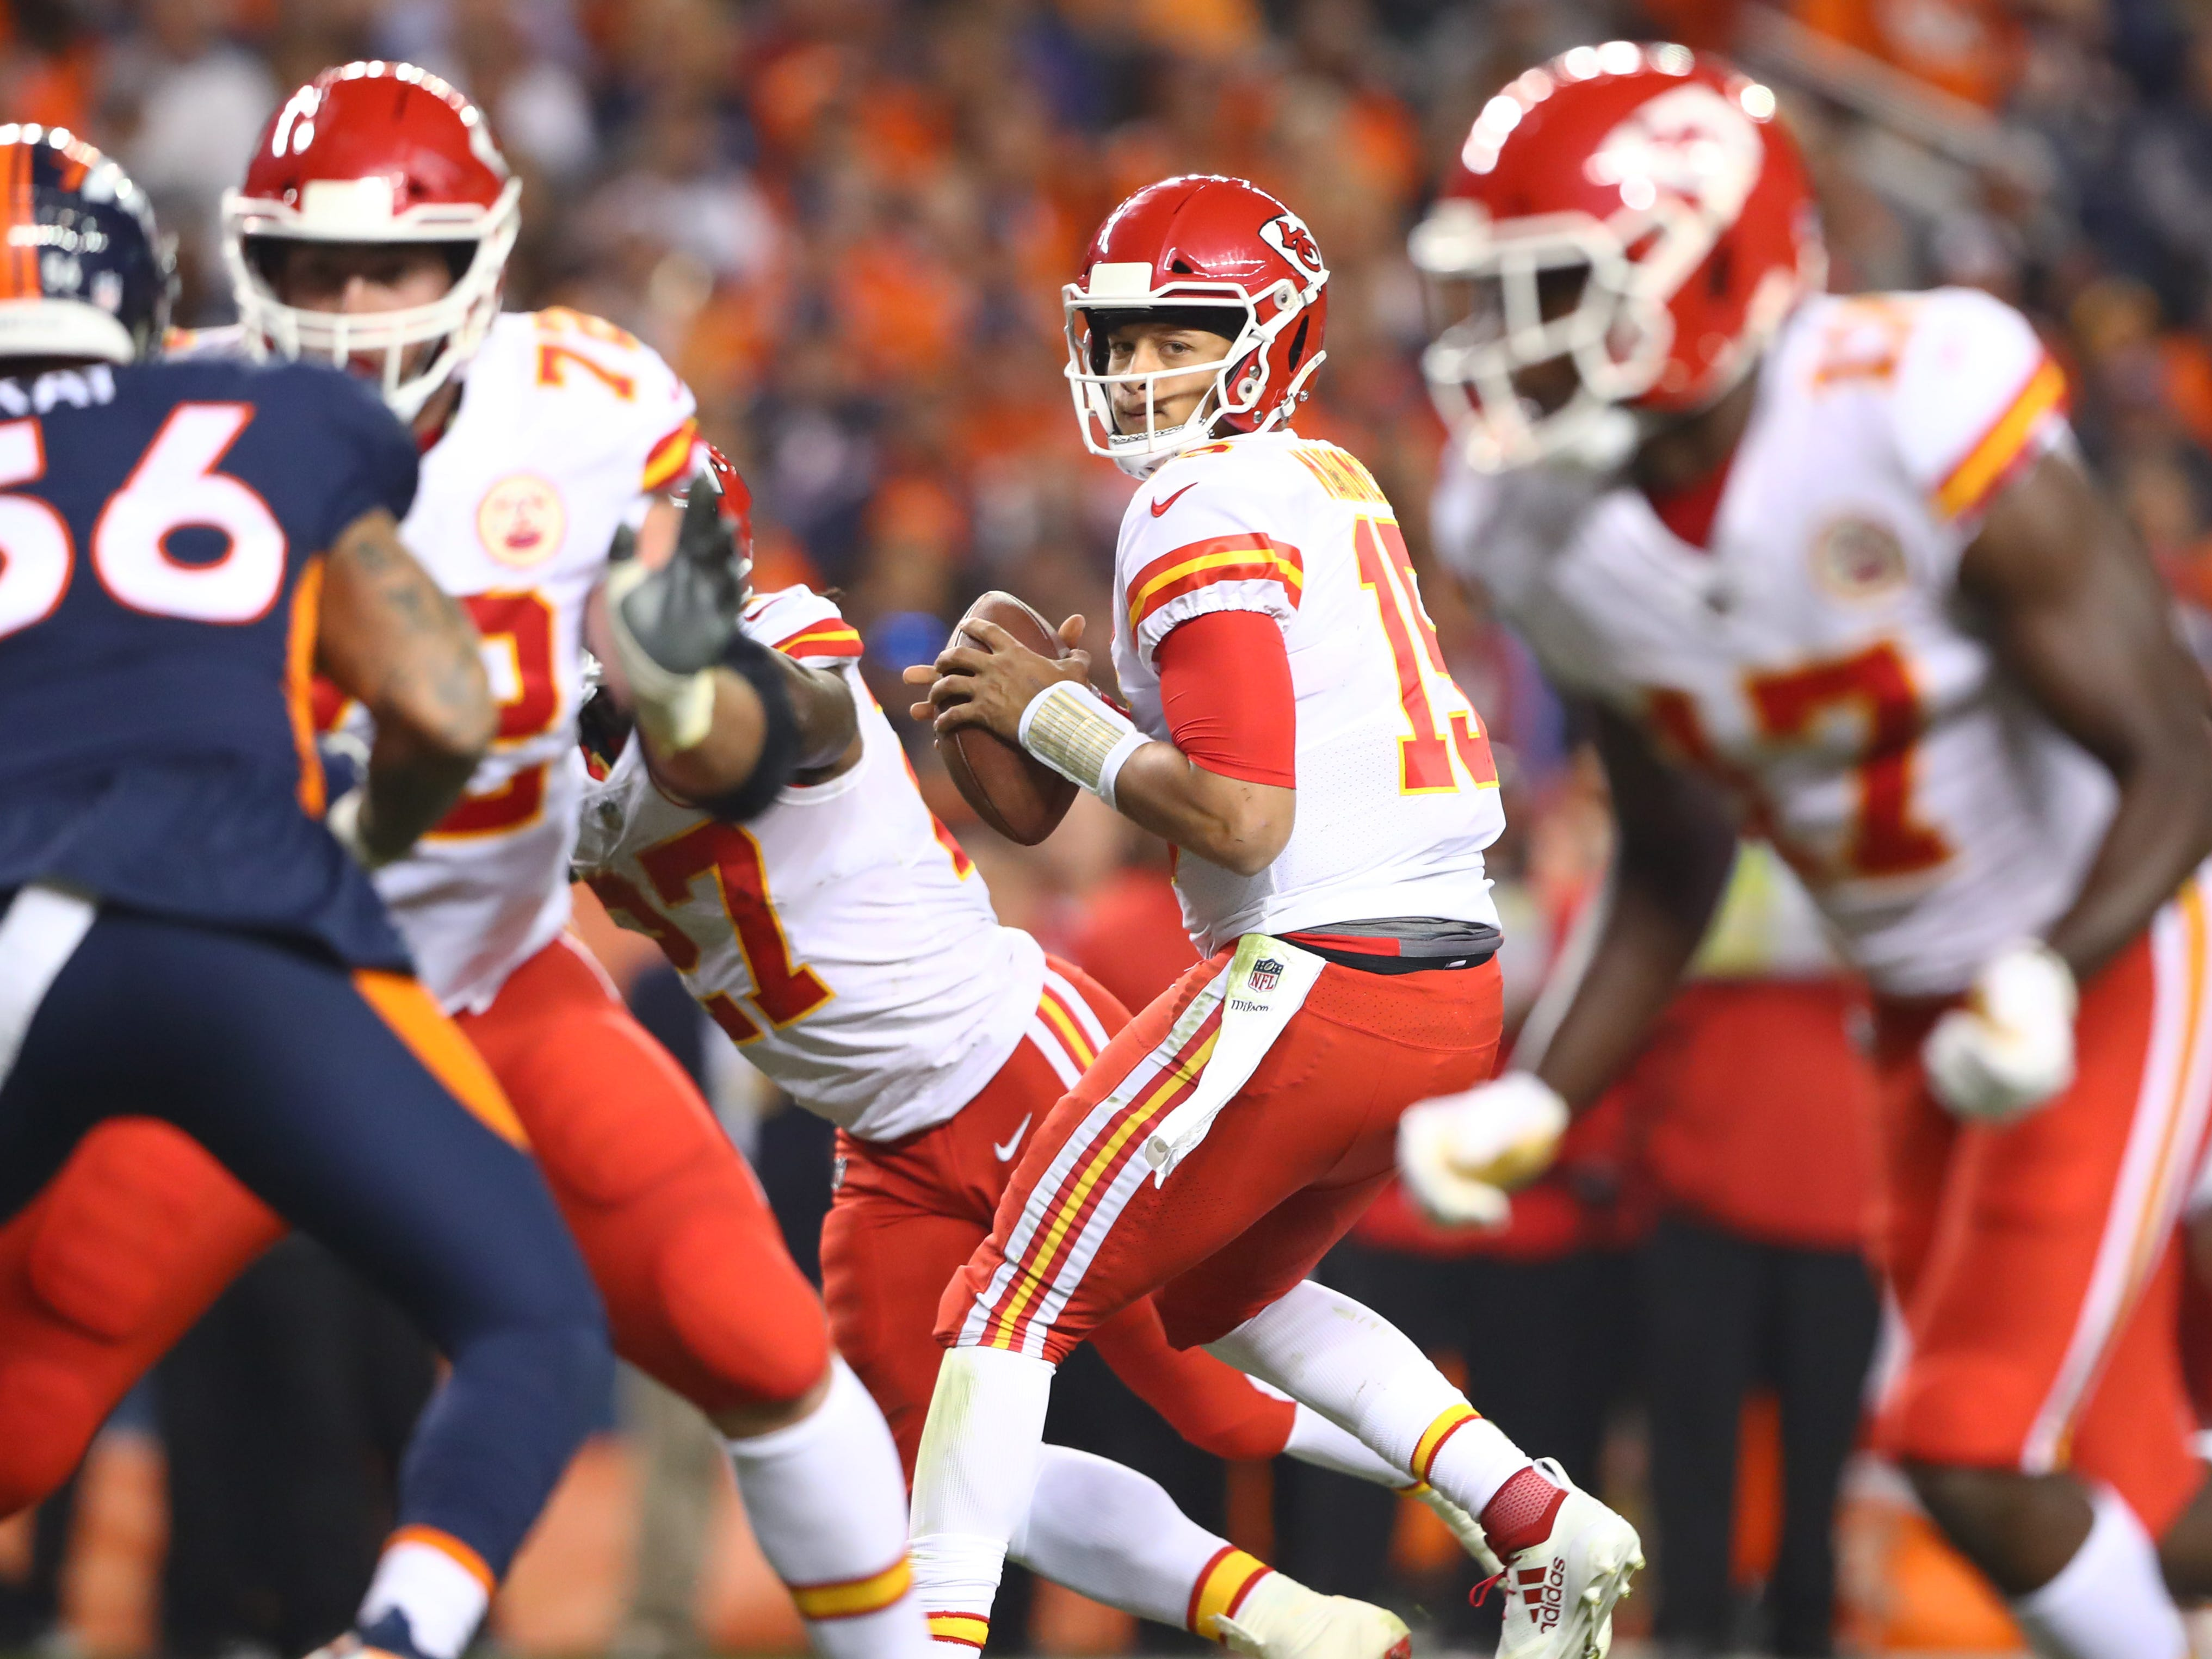 2. Chiefs (2): The KC BBQ wasn't quite as spicy Monday with Patrick Mahomes throwing just one TD, but can't argue with second straight 4-0 start.